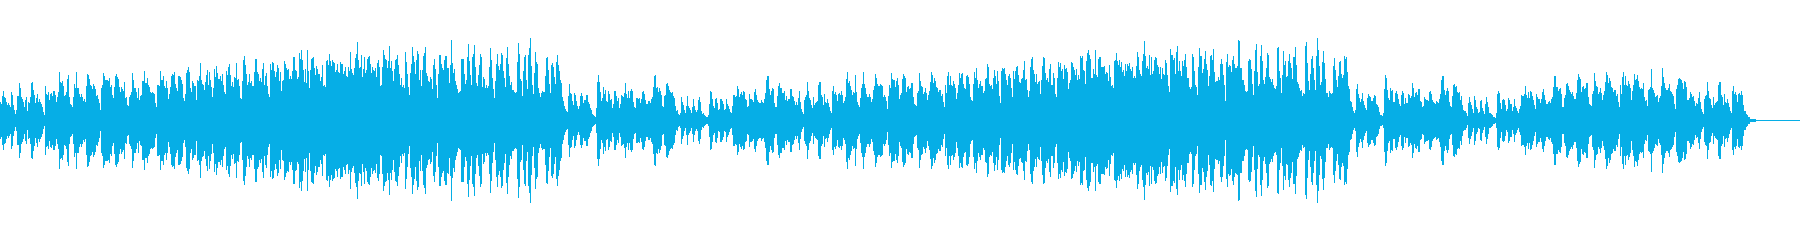 A song that suits science, technology, and biological images's reproduced waveform